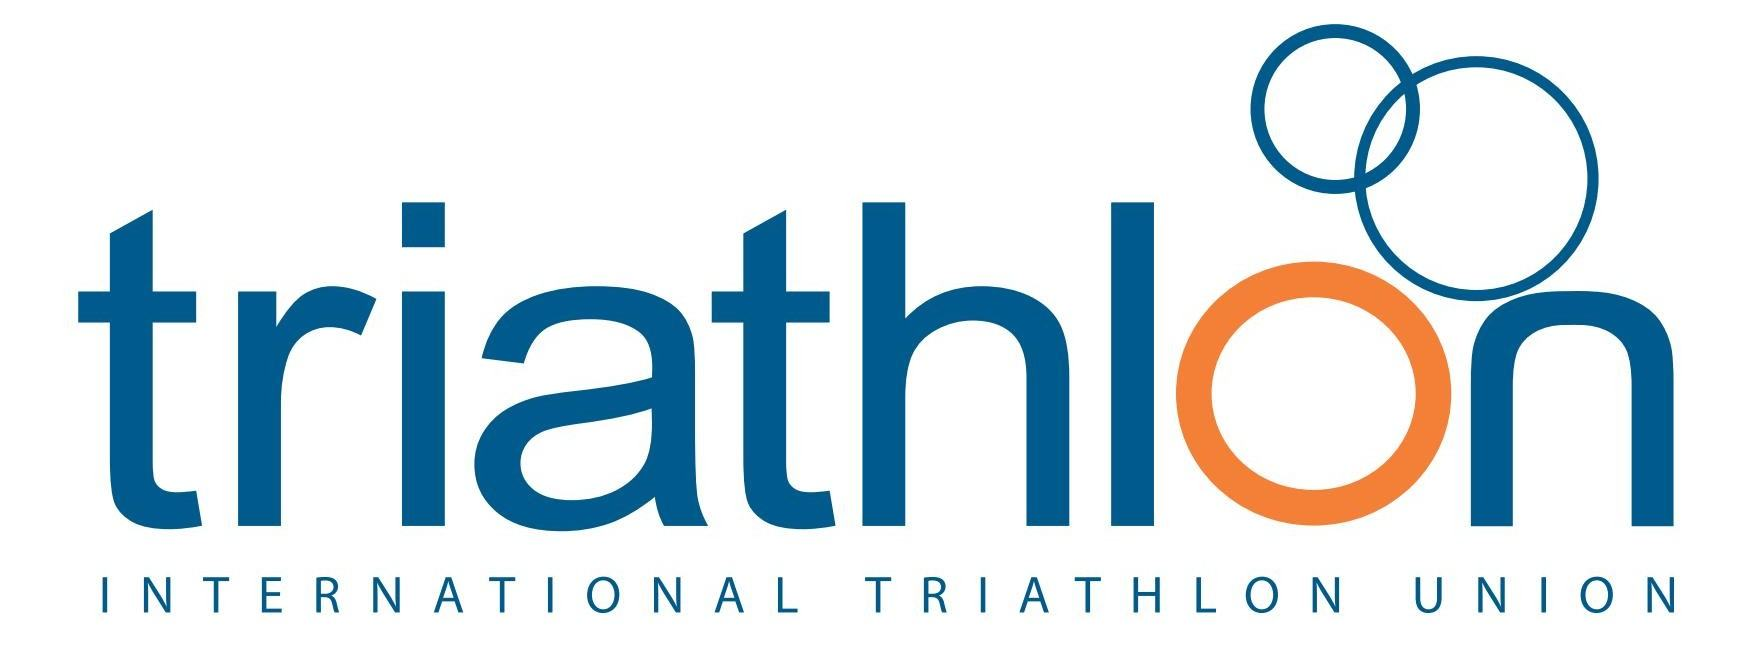 International Triathlon Union (ITU) Logo png